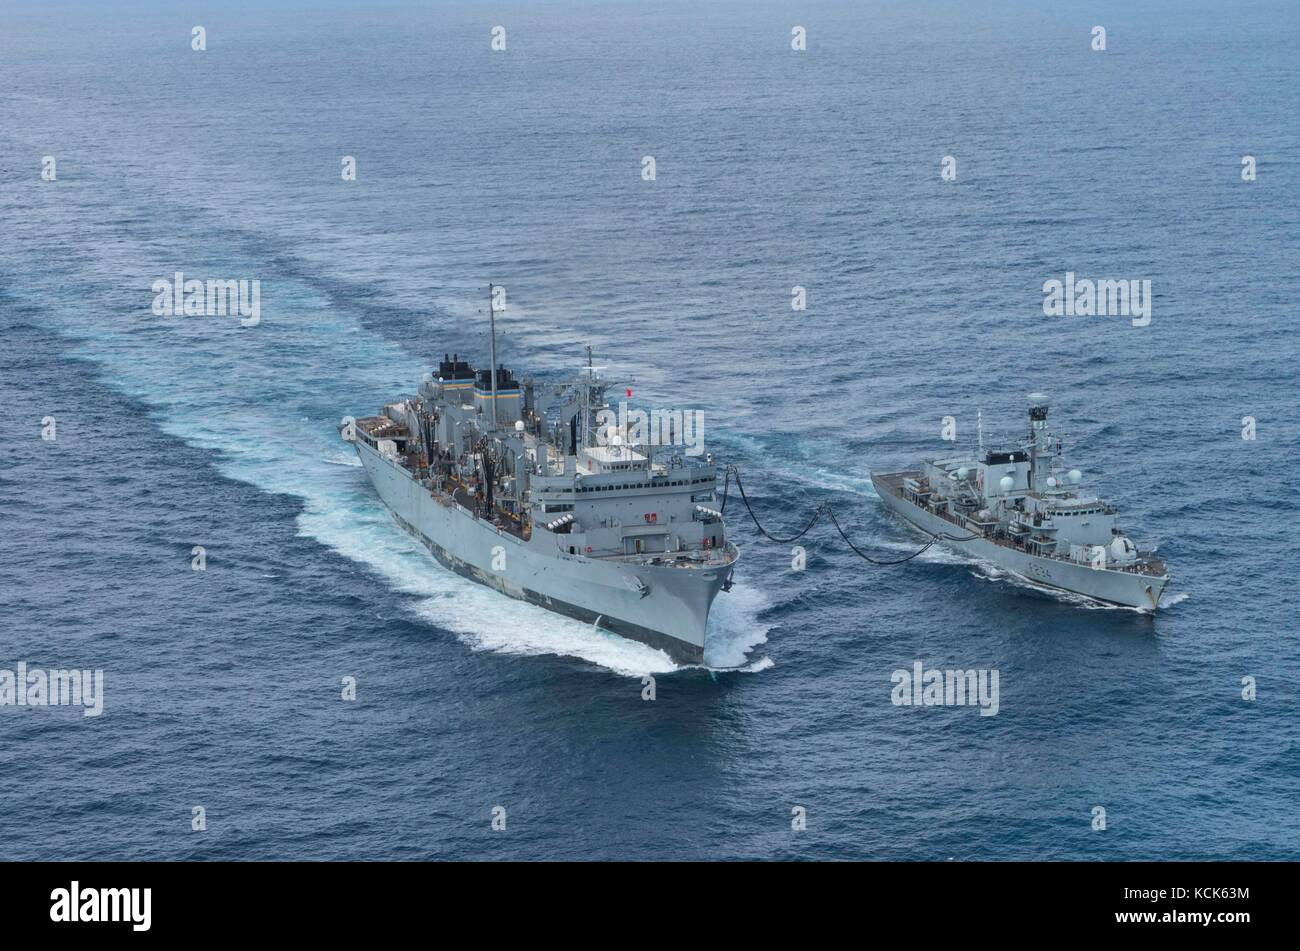 The U.S. Navy Supply-class fast combat support ship USNS Supply (left) steams in formation with the British Royal - Stock Image